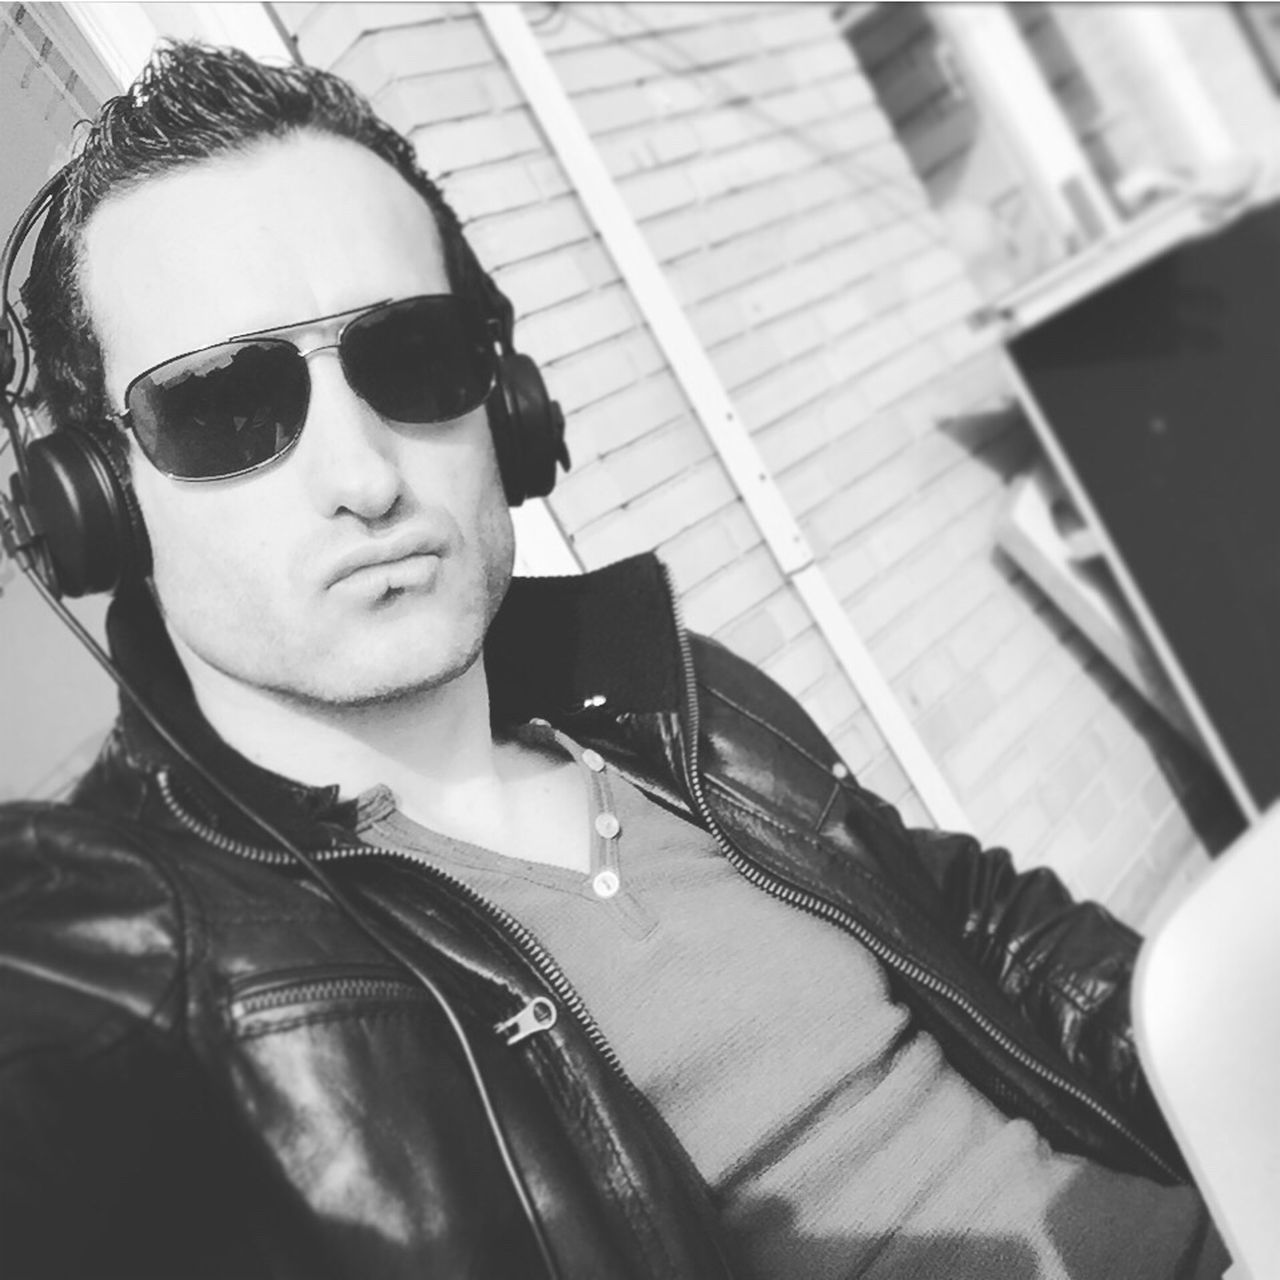 Sunglasses Music Real People Lifestyles Duckface Cool Leather Jacket Black & White First Eyeem Photo